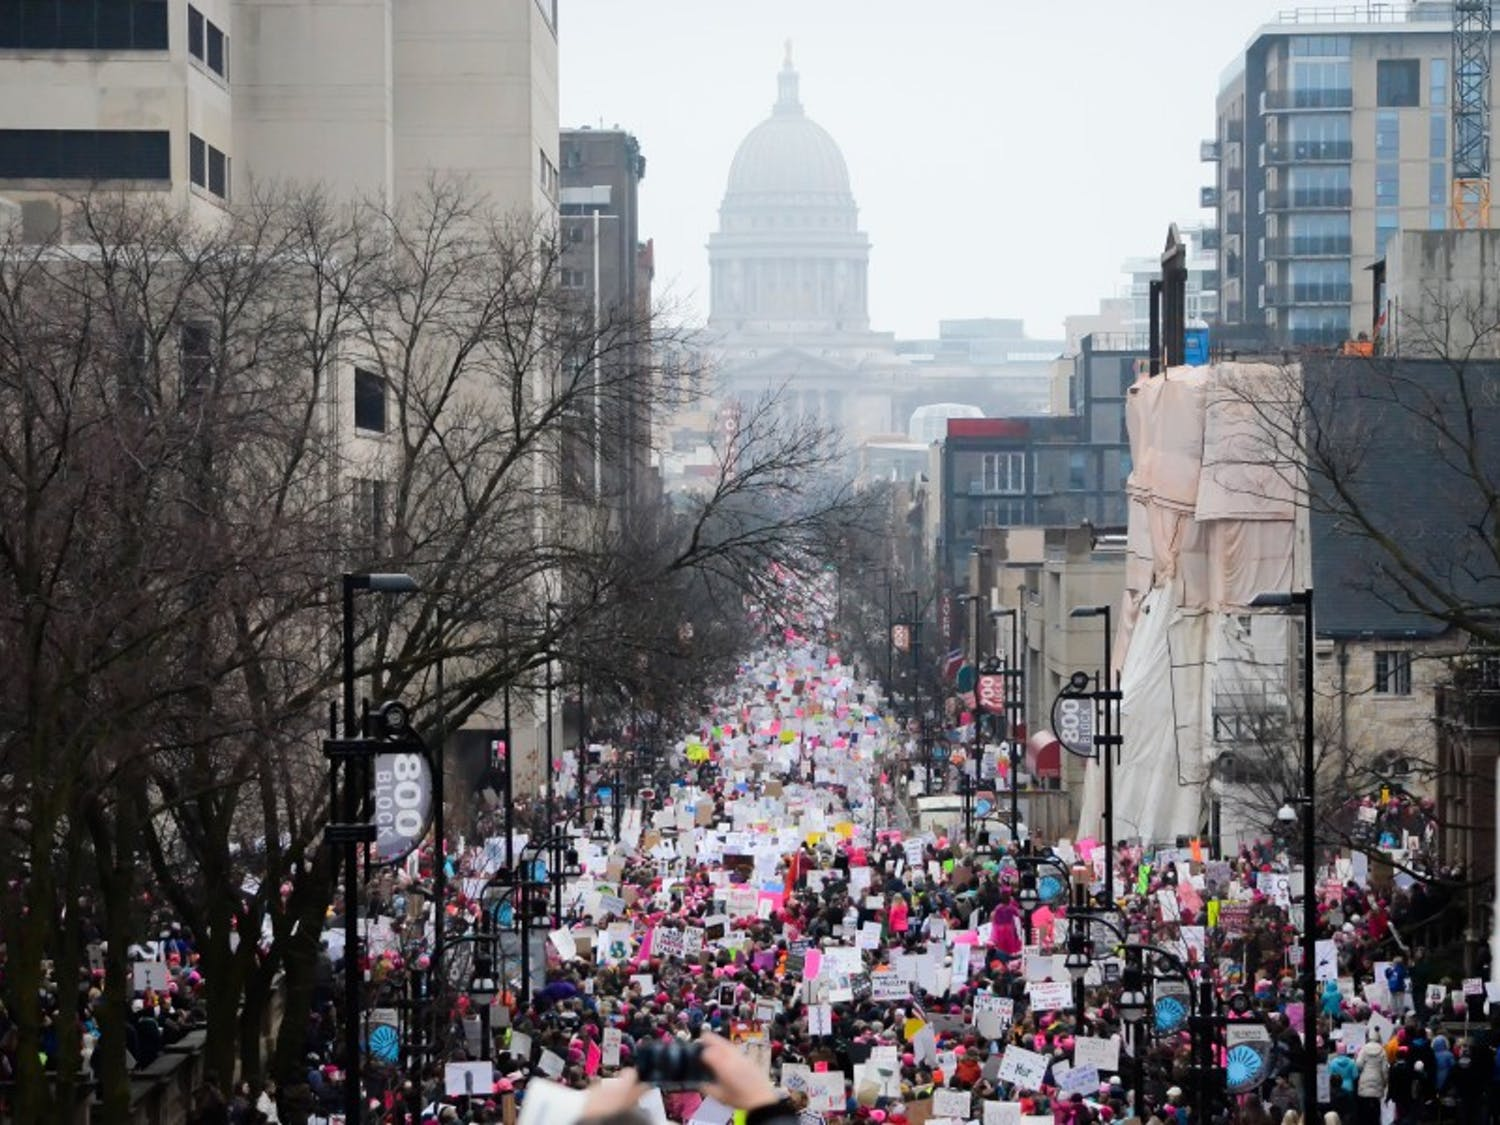 One of the themes of the Madison Women's March in January was combating sexual assault.